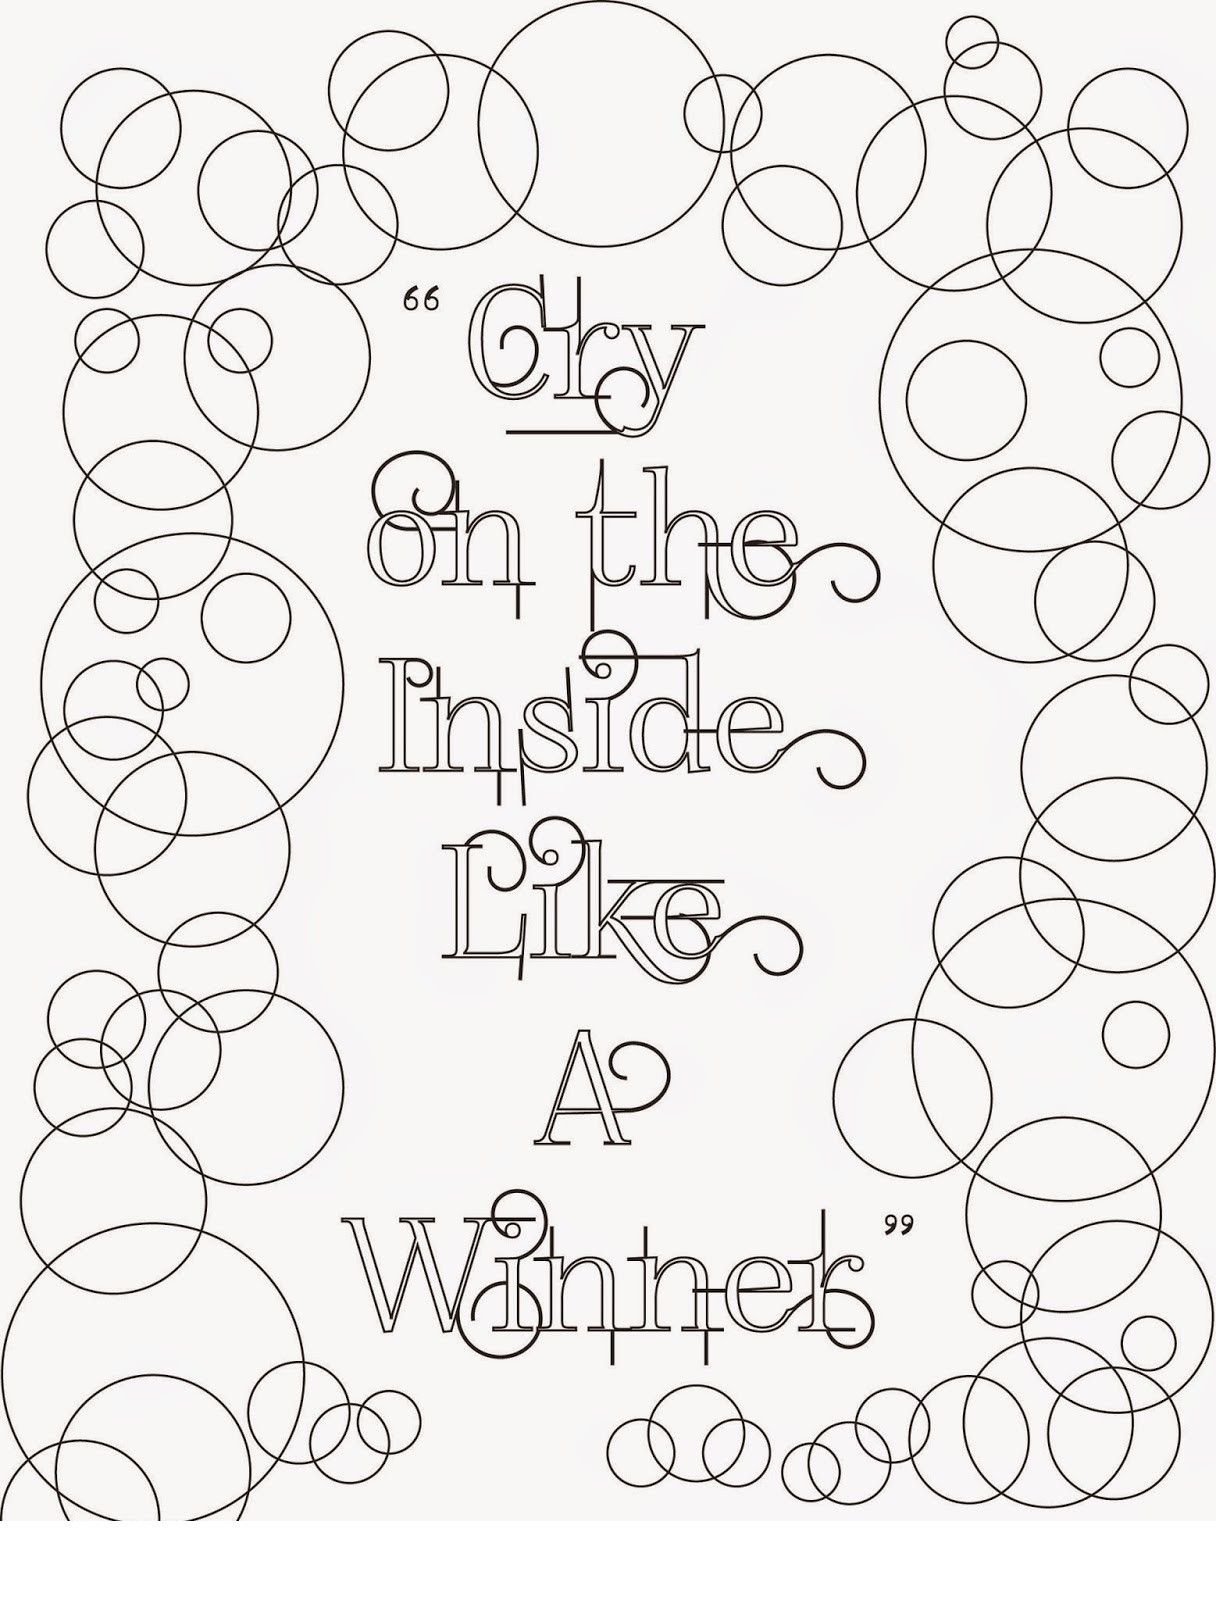 coloring-pages-for-adults-sayings-2.jpg